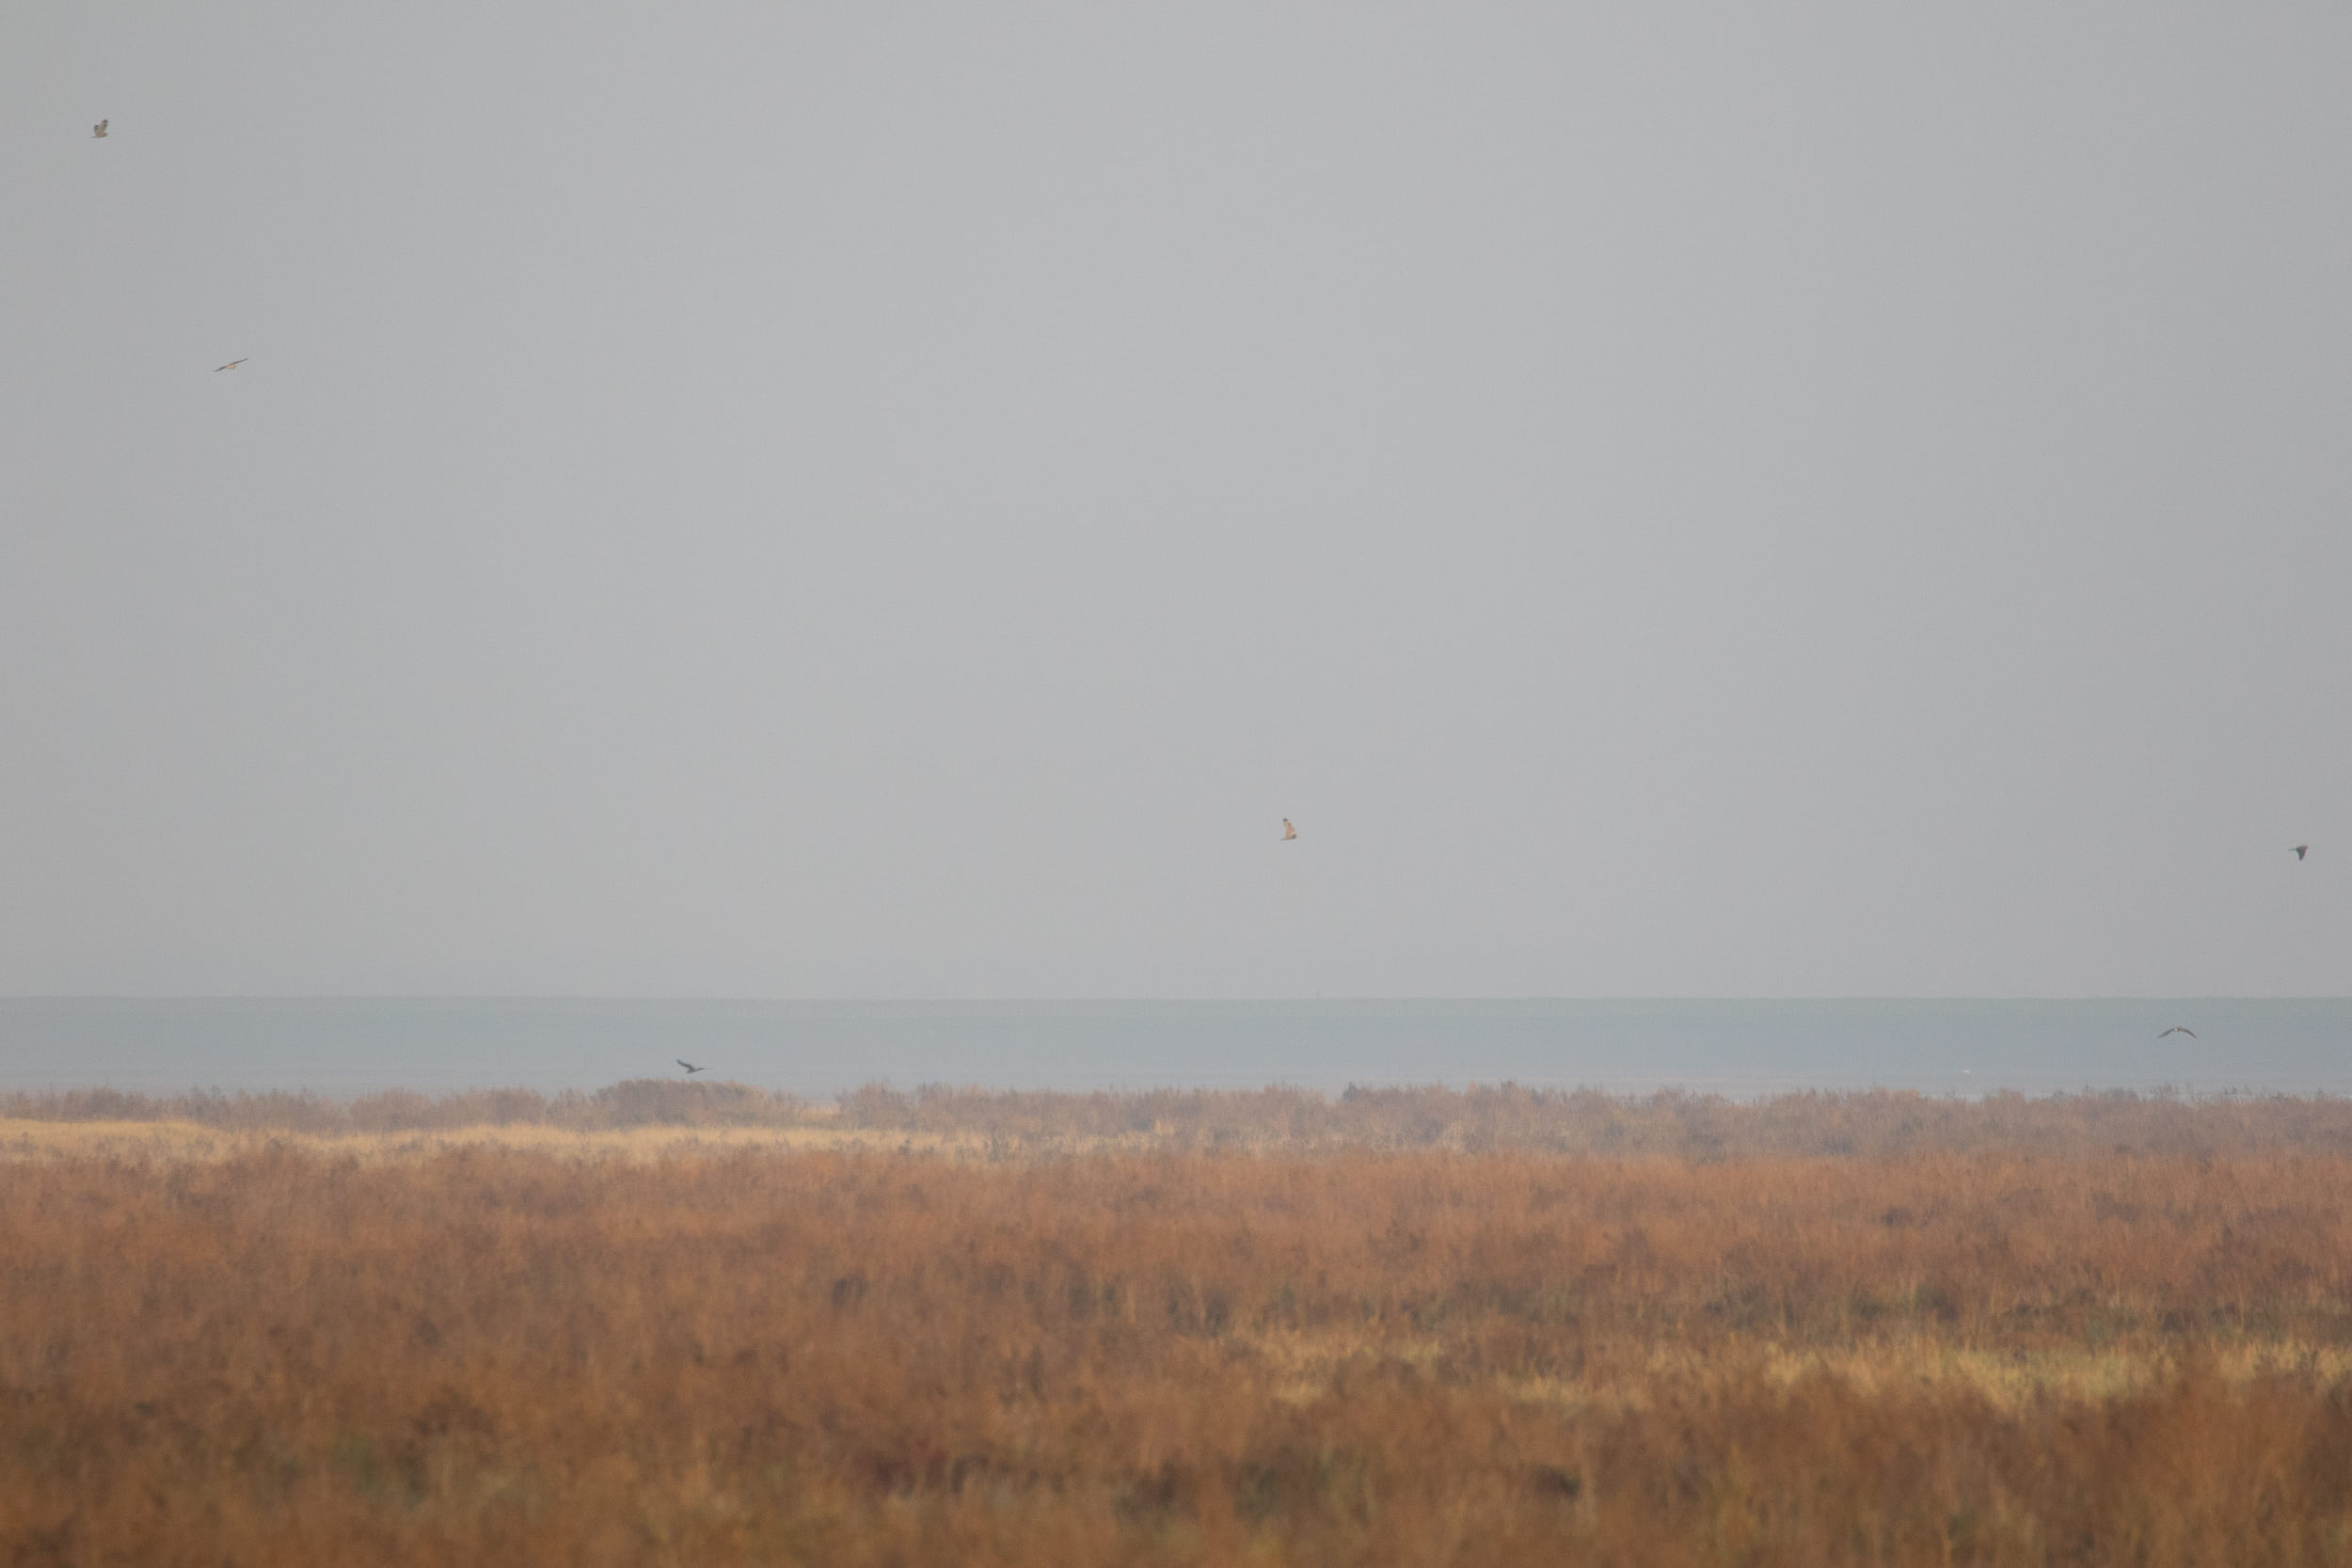 I could not fit more than 3 Short-Eared owls in 1 picture at a time, so here goes: the 3 highest birds are SE Owls, the 3 lowest birds are 1cy Hen Harriers.